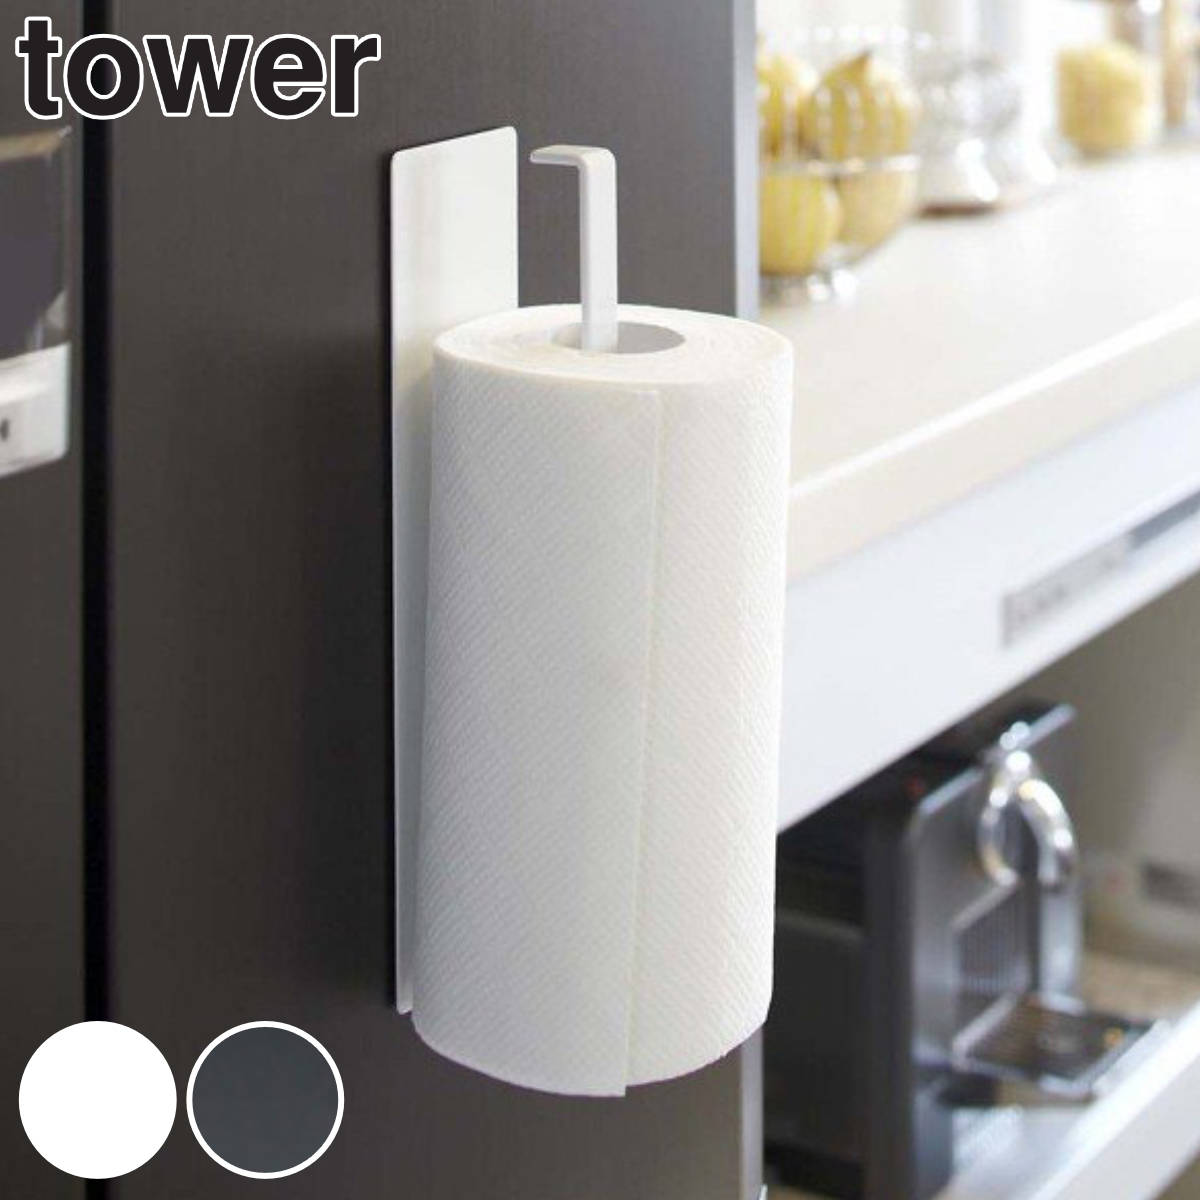 Magnet kitchen roll holder Tower tower (paper holder kitchen roll holder  refrigerator kitchen storage magnetic paper towel kitchen paper roll paper  ...